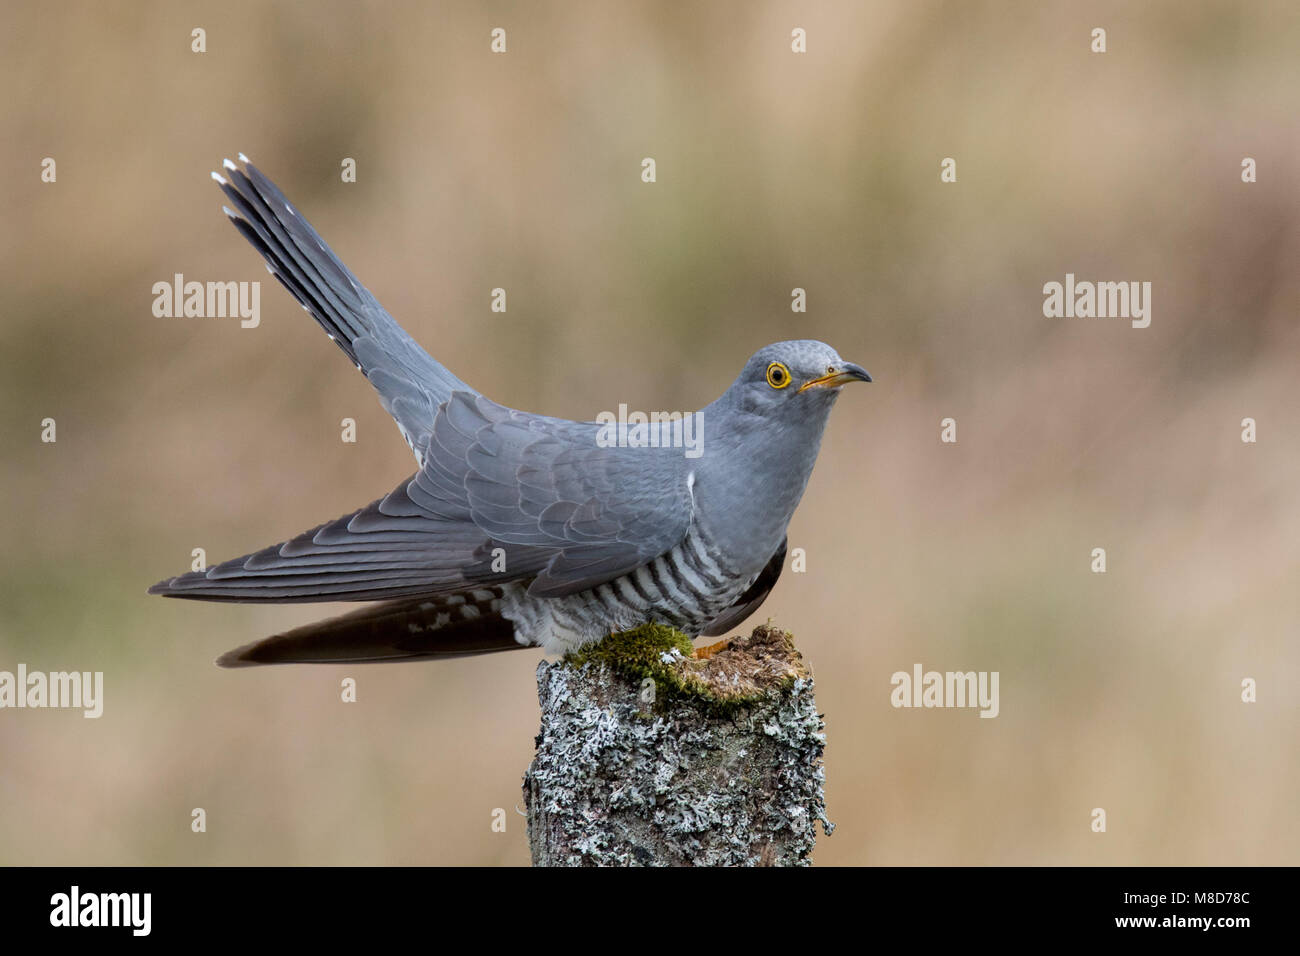 Eurasian Cuckoo perched on lichen covered  post - Stock Image